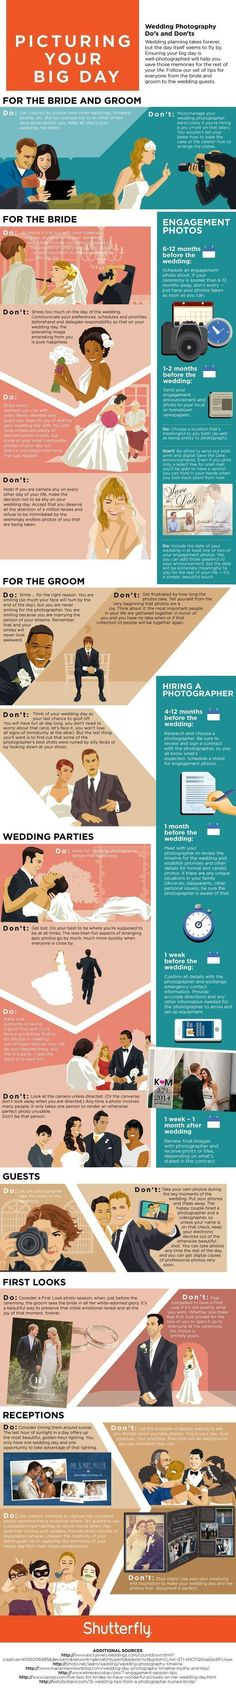 Plan Out a Picture Perfect Wedding Day With These Handy Photography Tips (INFOGRAPHIC) #weddingplanninginfographic #weddinginfographic #weddingphotography